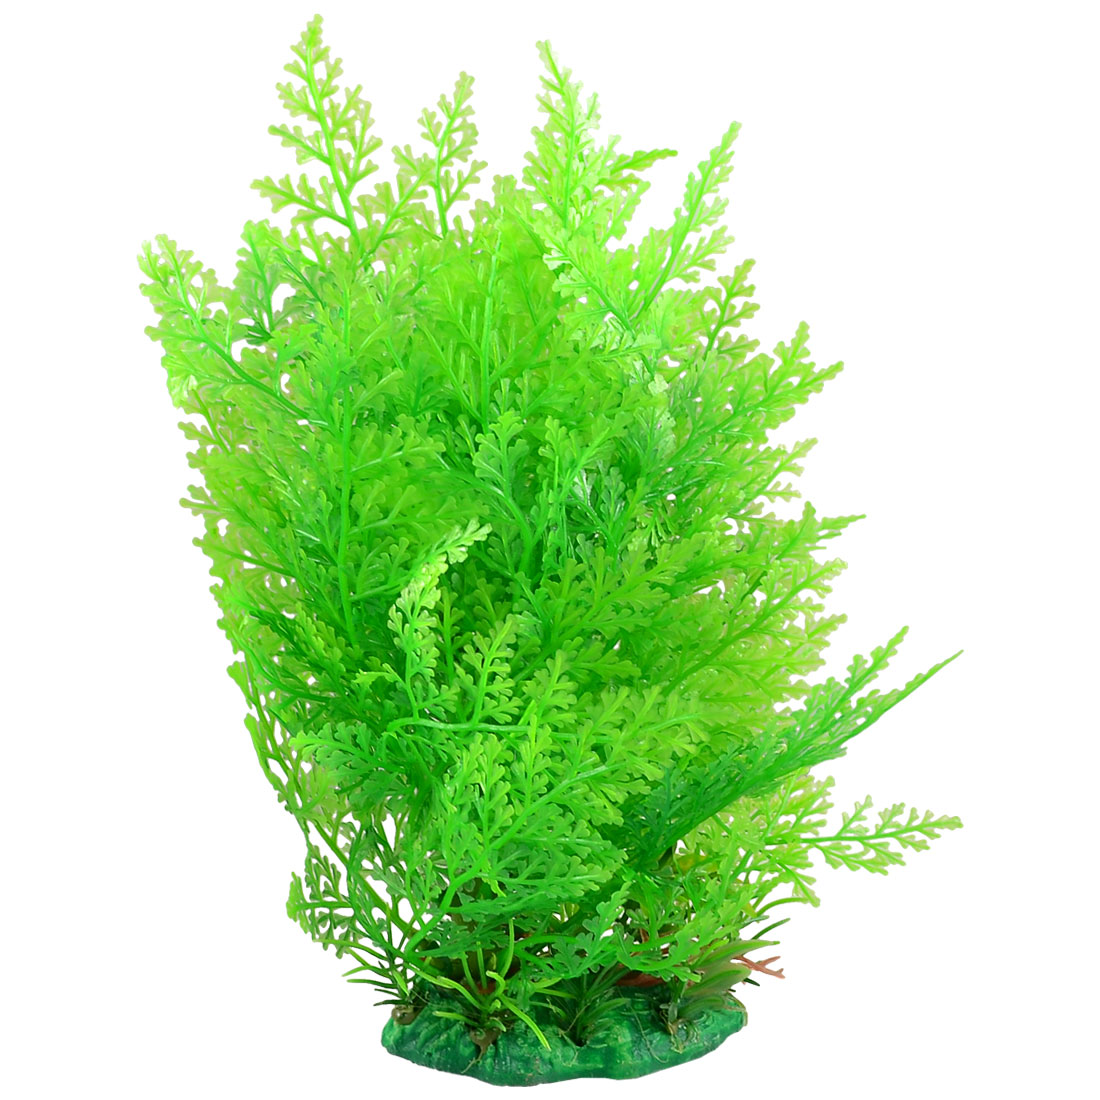 "Green Plastic Grass Ornament for Fish Tank Aquarium 8.6"" High"